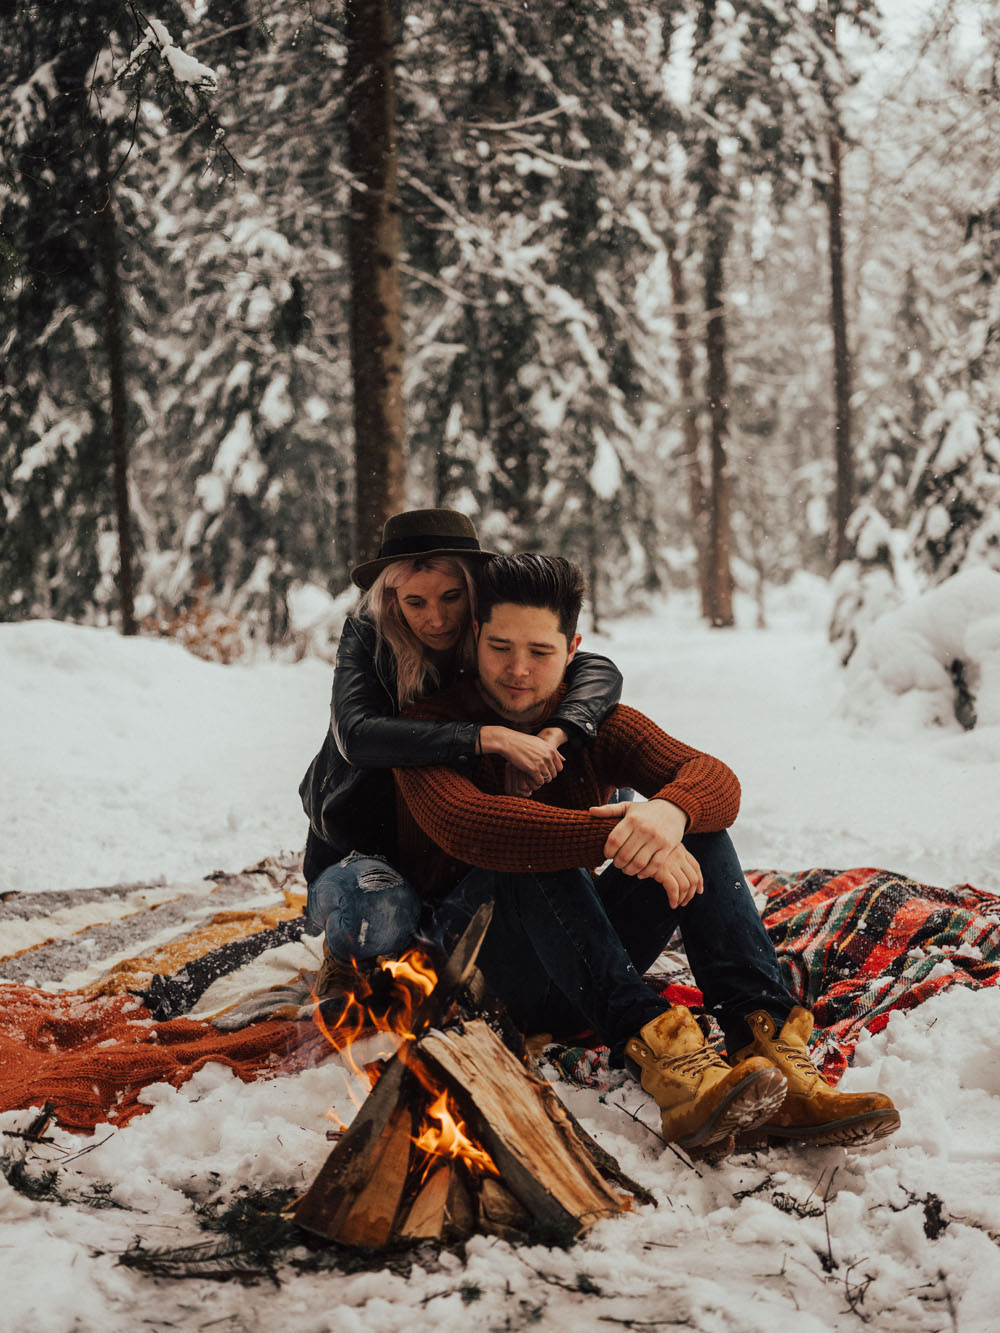 Winter forest elopement with campfire and jacuzzi intimate photo session